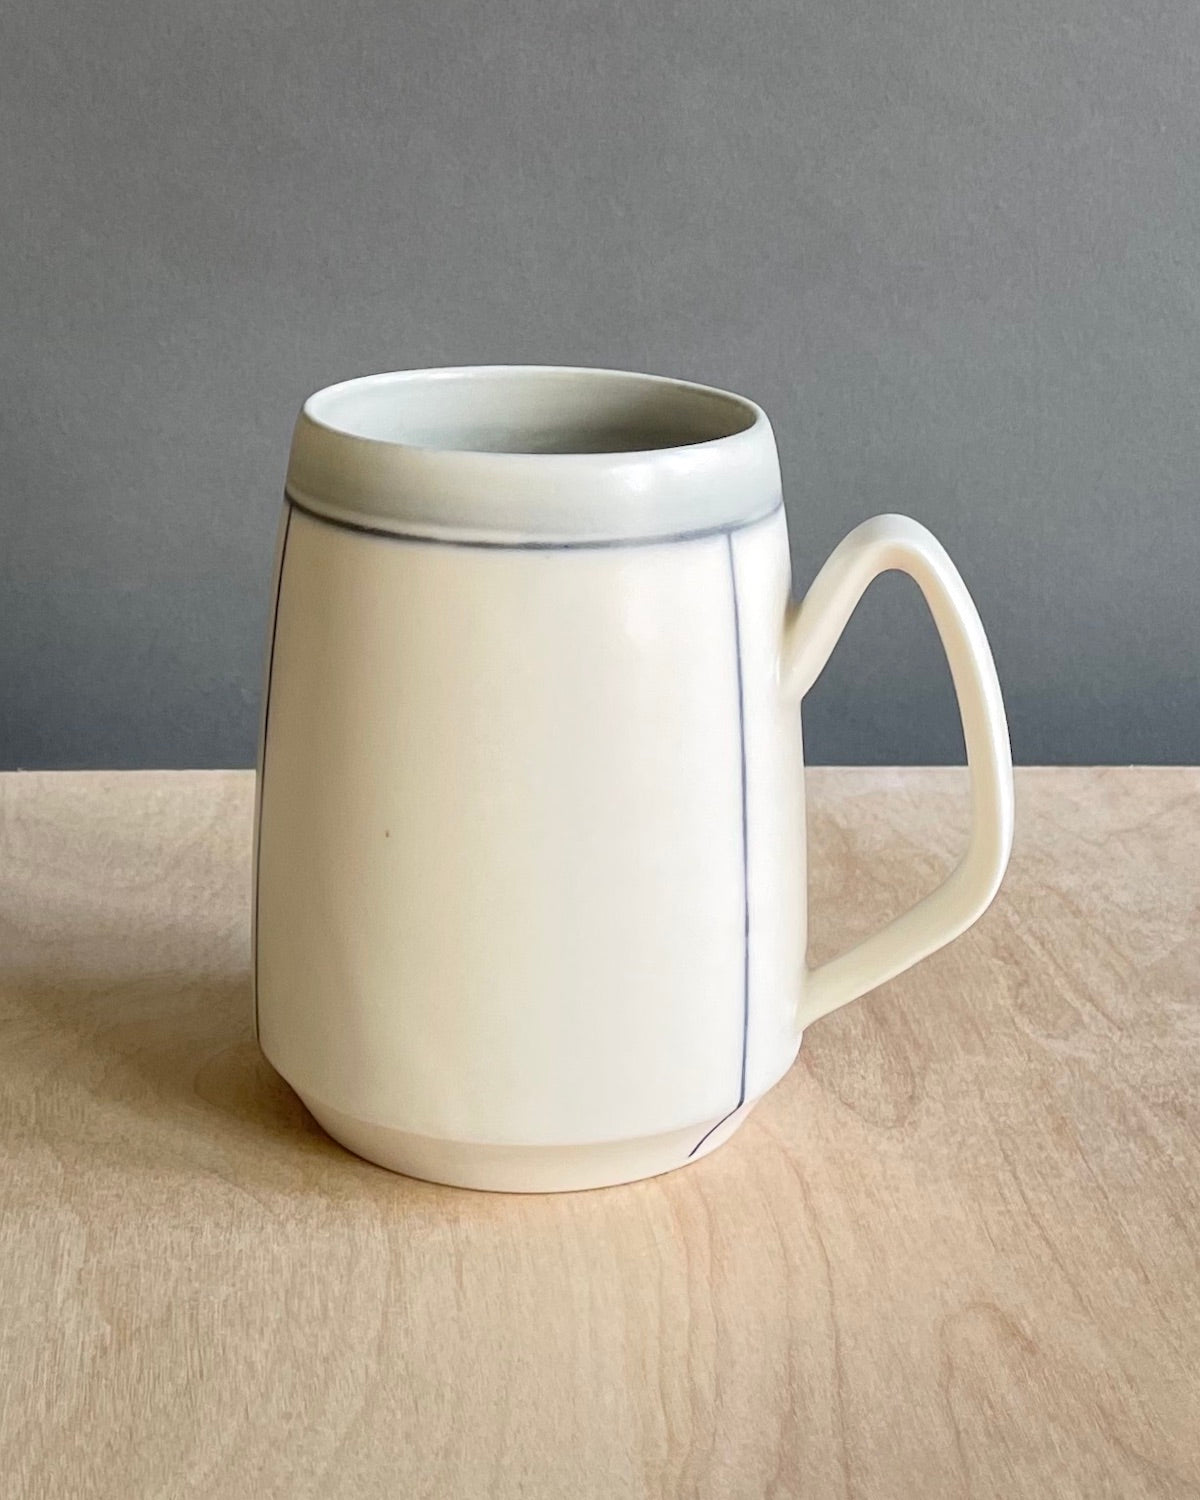 12oz Mug - Line & Color Block